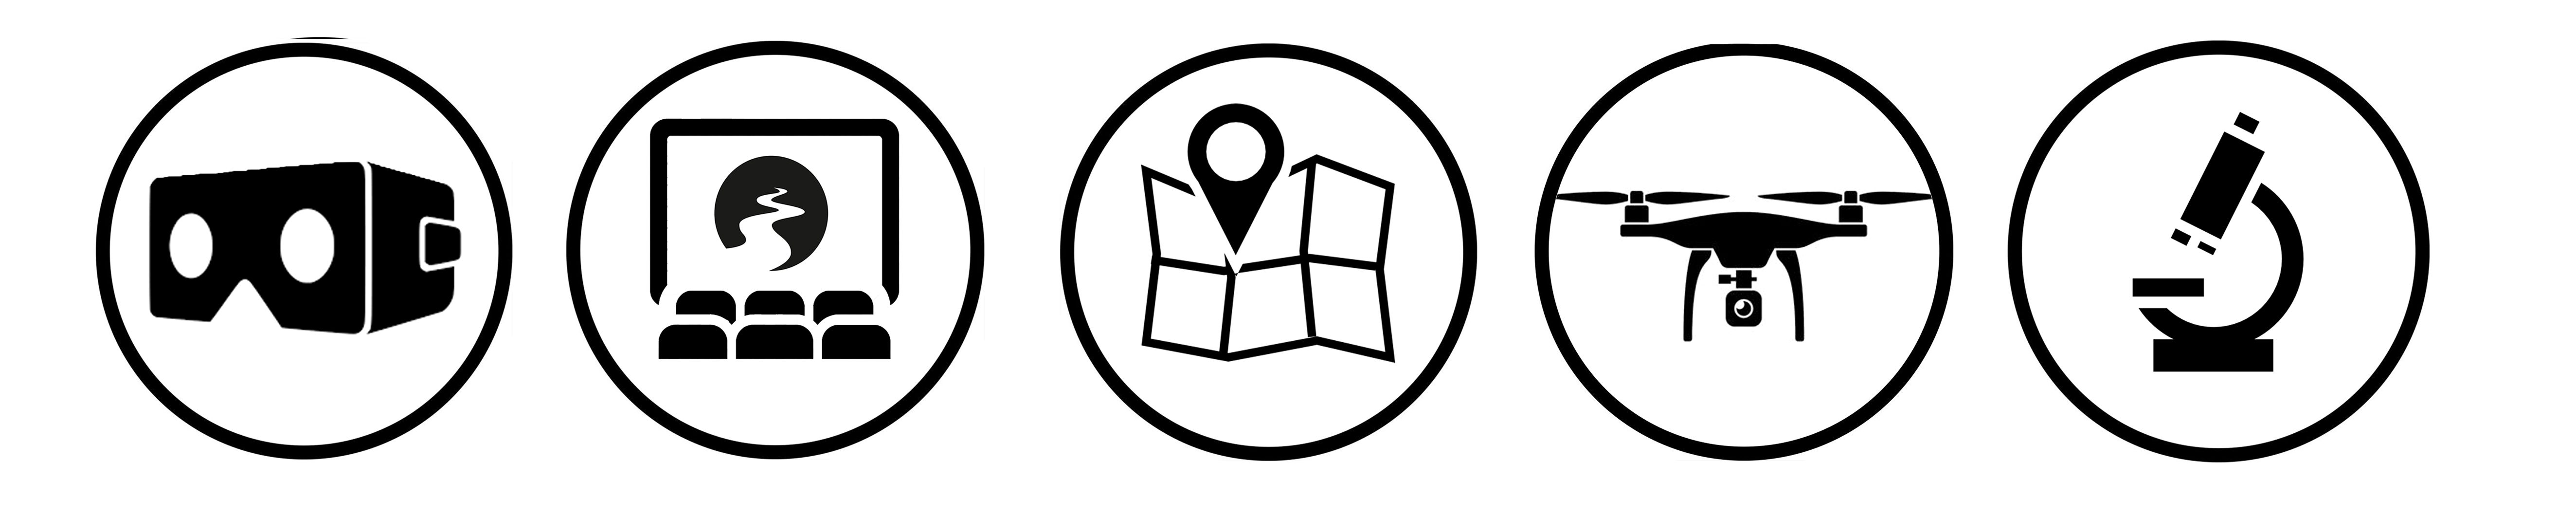 Mobile Classroom Icons in CIRCLE